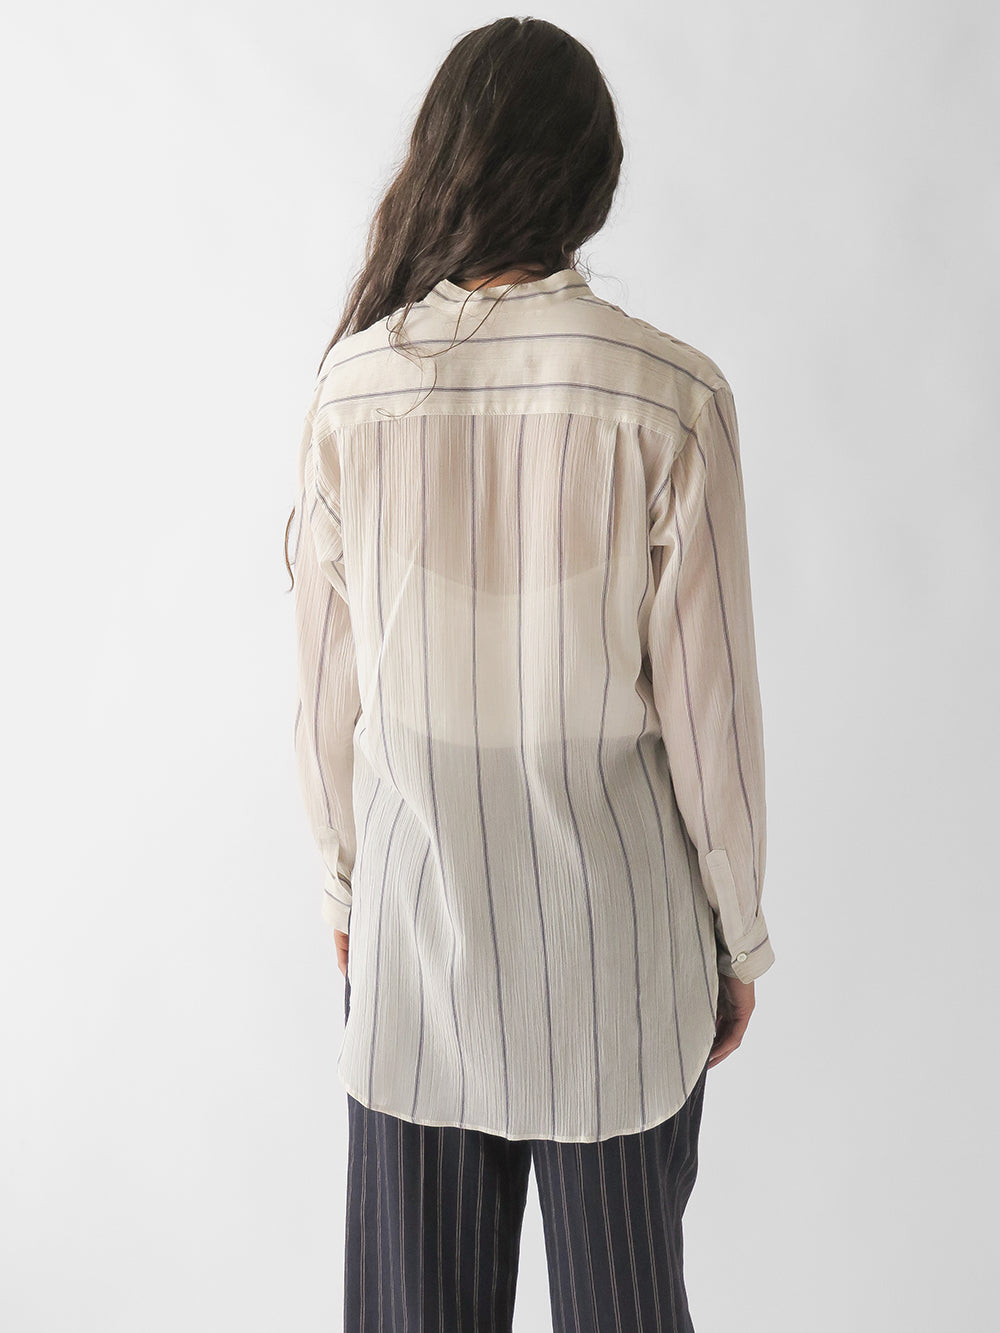 nico banda shirt in white stripe